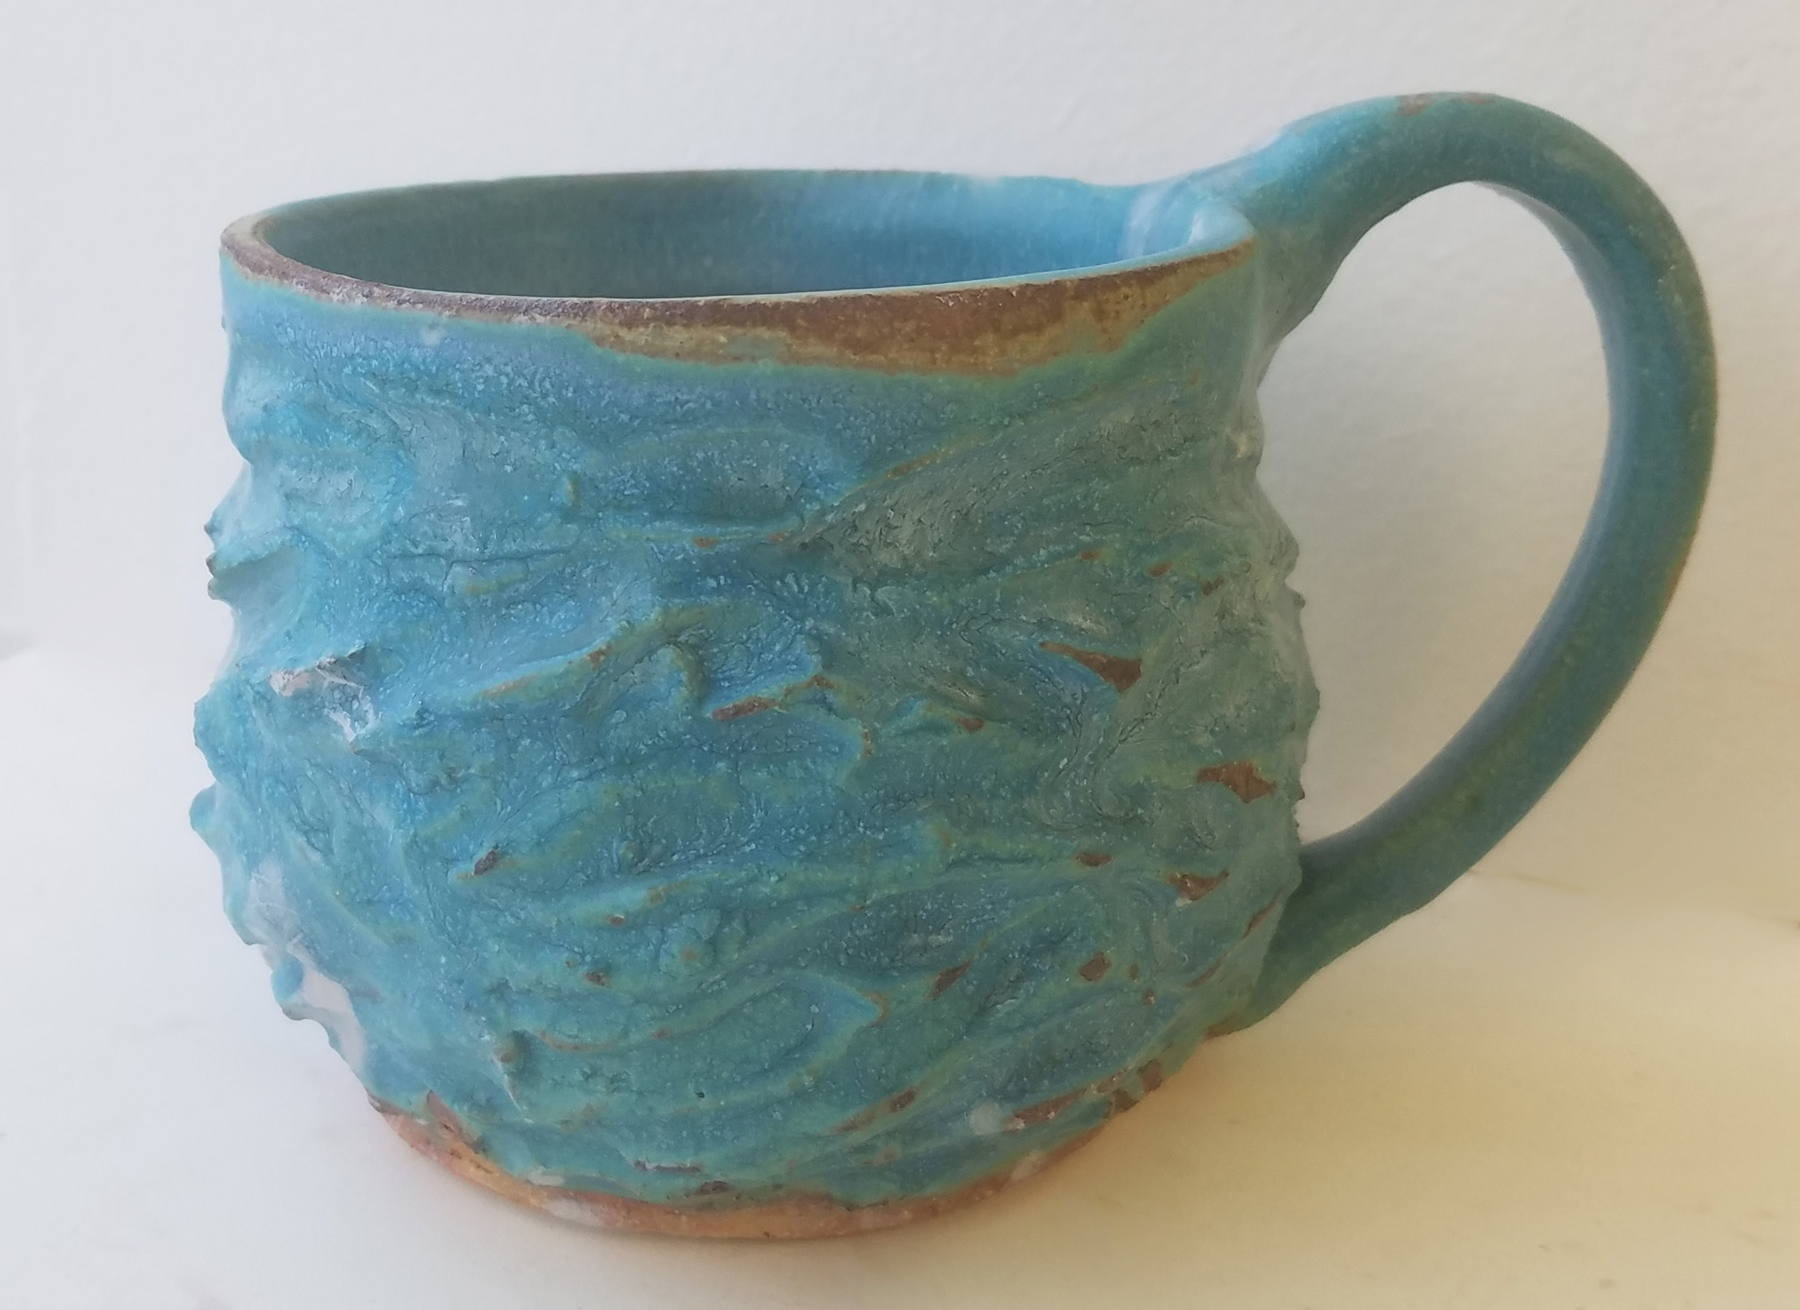 Cup by Meghan G.